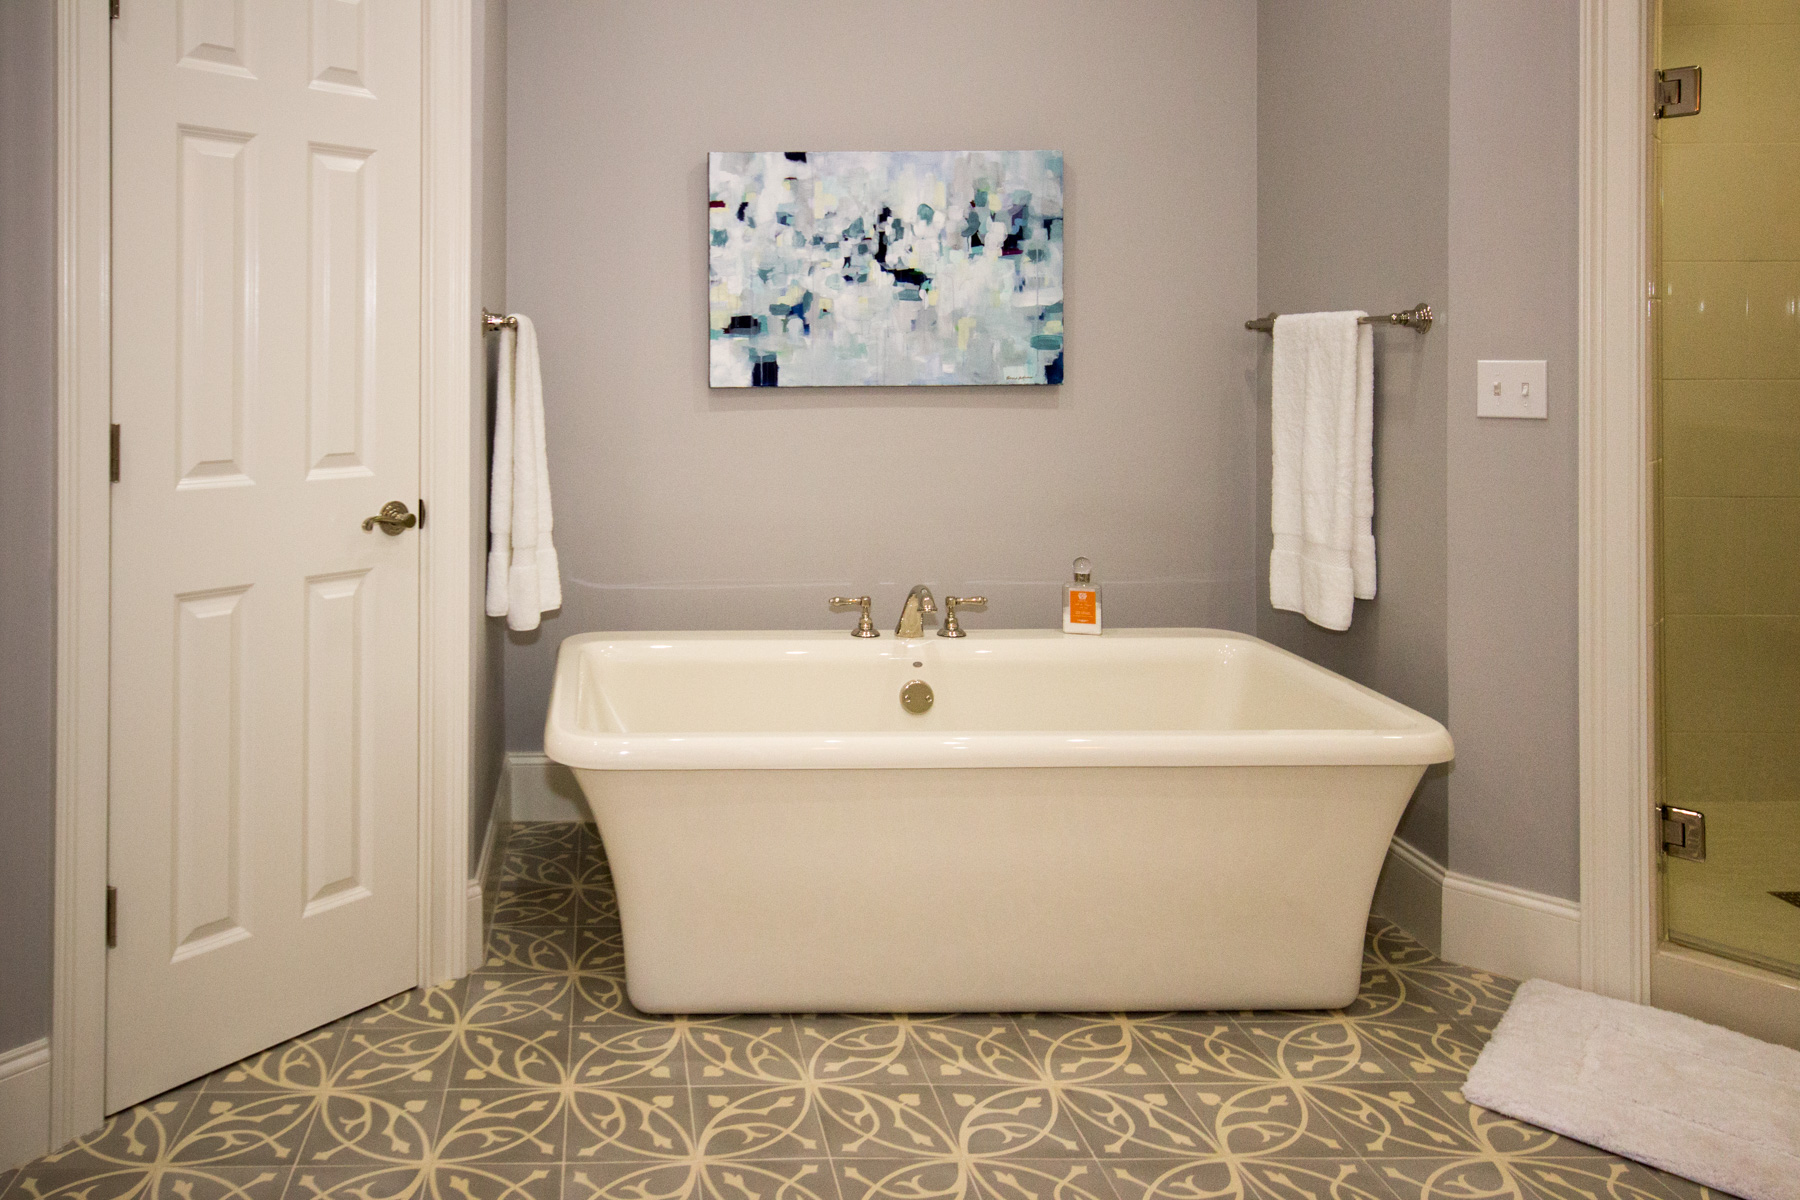 Bath Standalone Tubs are Hot - Paces Construction